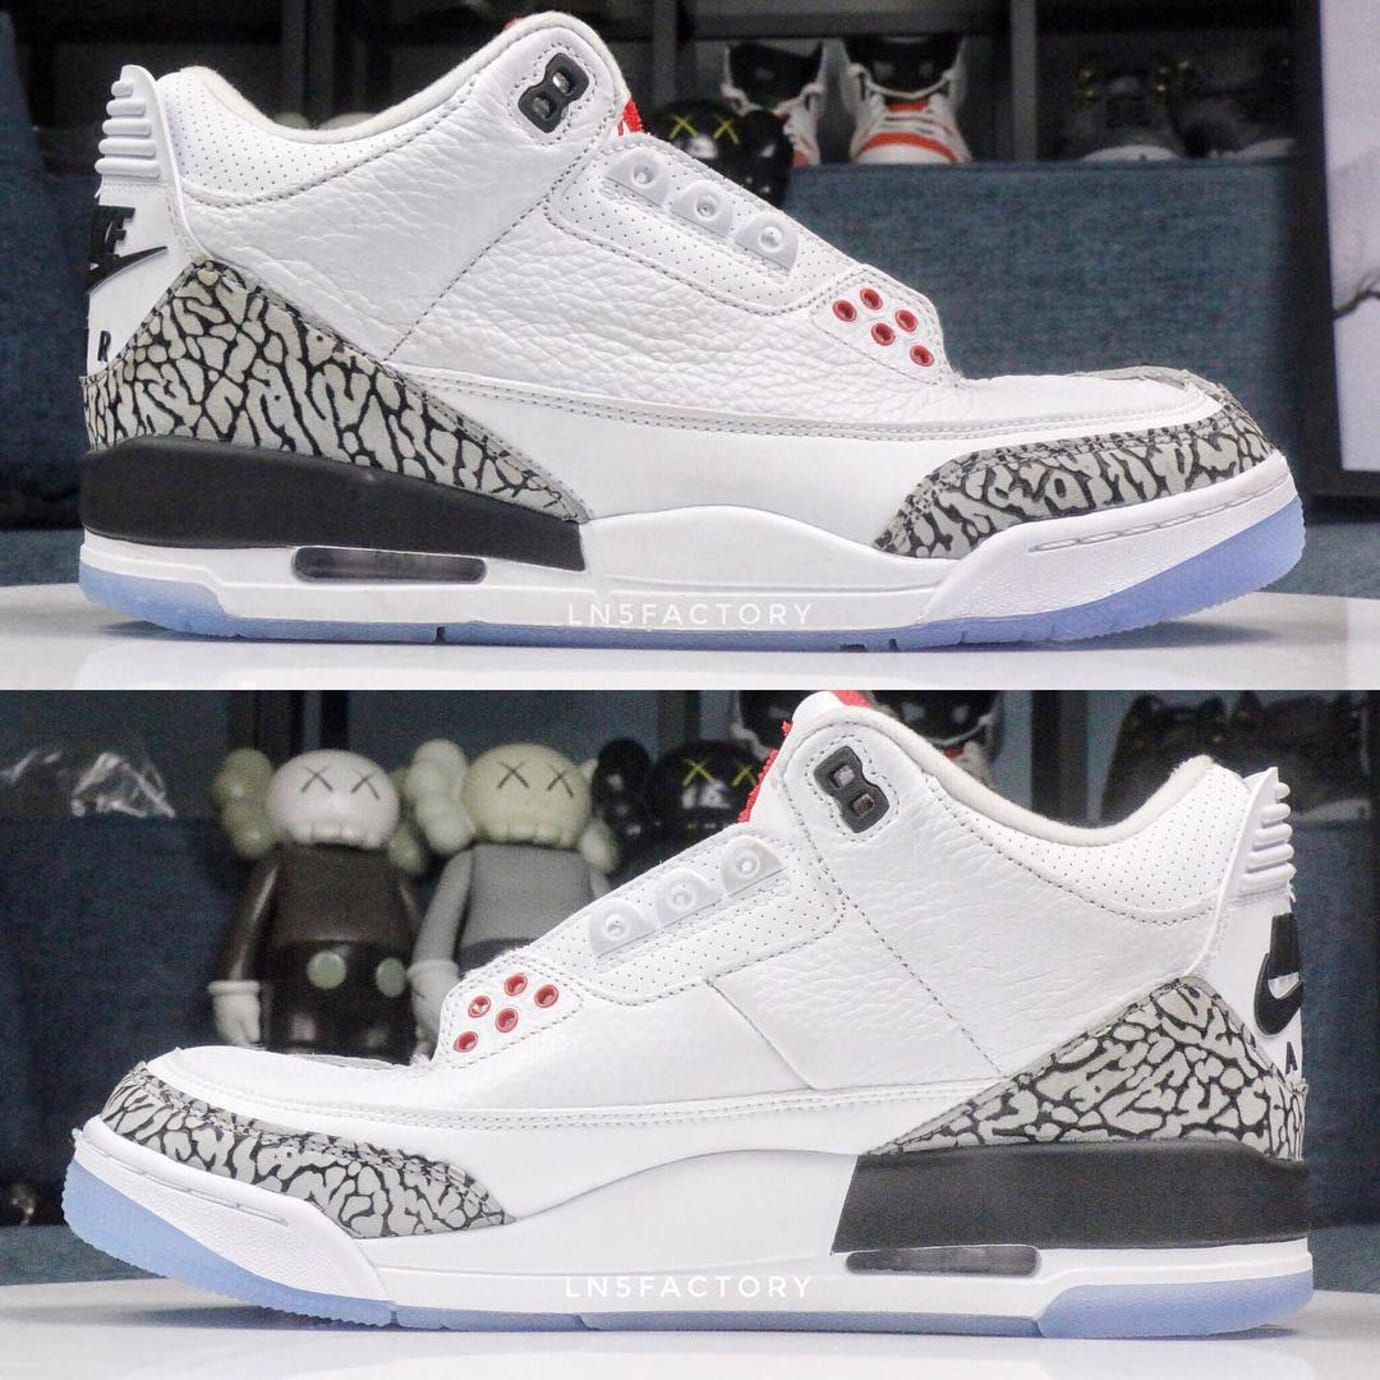 7d981f959b4bf9 Air Jordan 3 III Clear Sole 2018 Release Date 923096-101 Profile